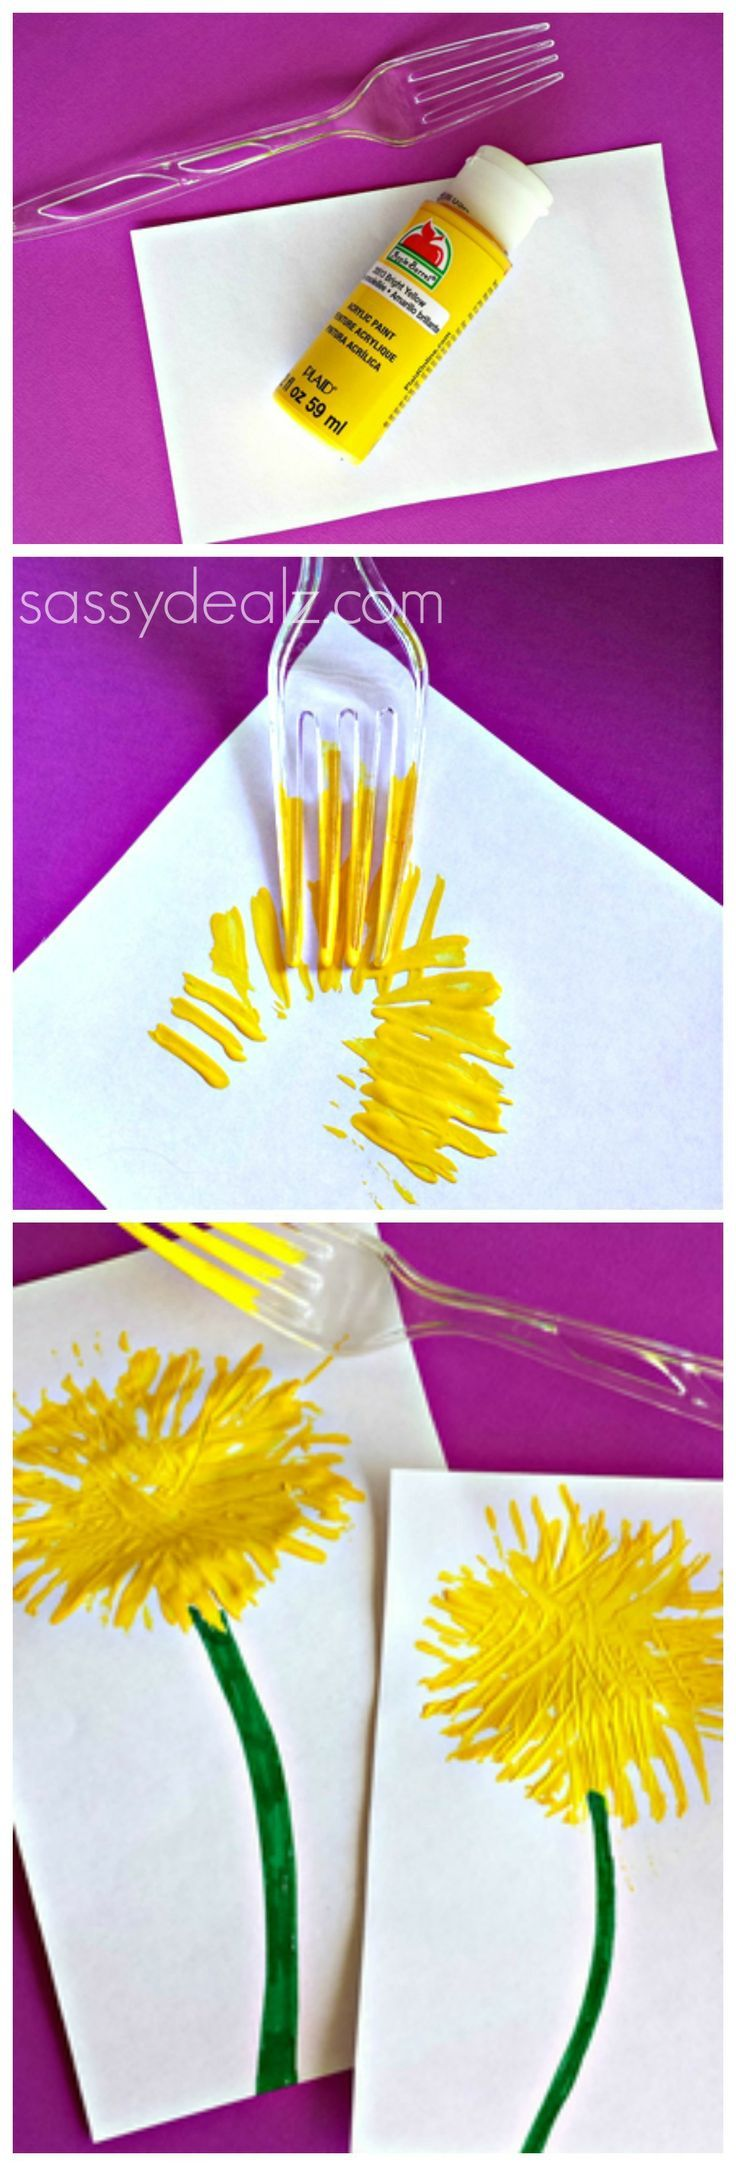 Make a Dandelion Craft using a Fork! (scheduled via http://www.tailwindapp.com?utm_source=pinterest&utm_medium=twpin&utm_content=post1782699&utm_campaign=scheduler_attribution)